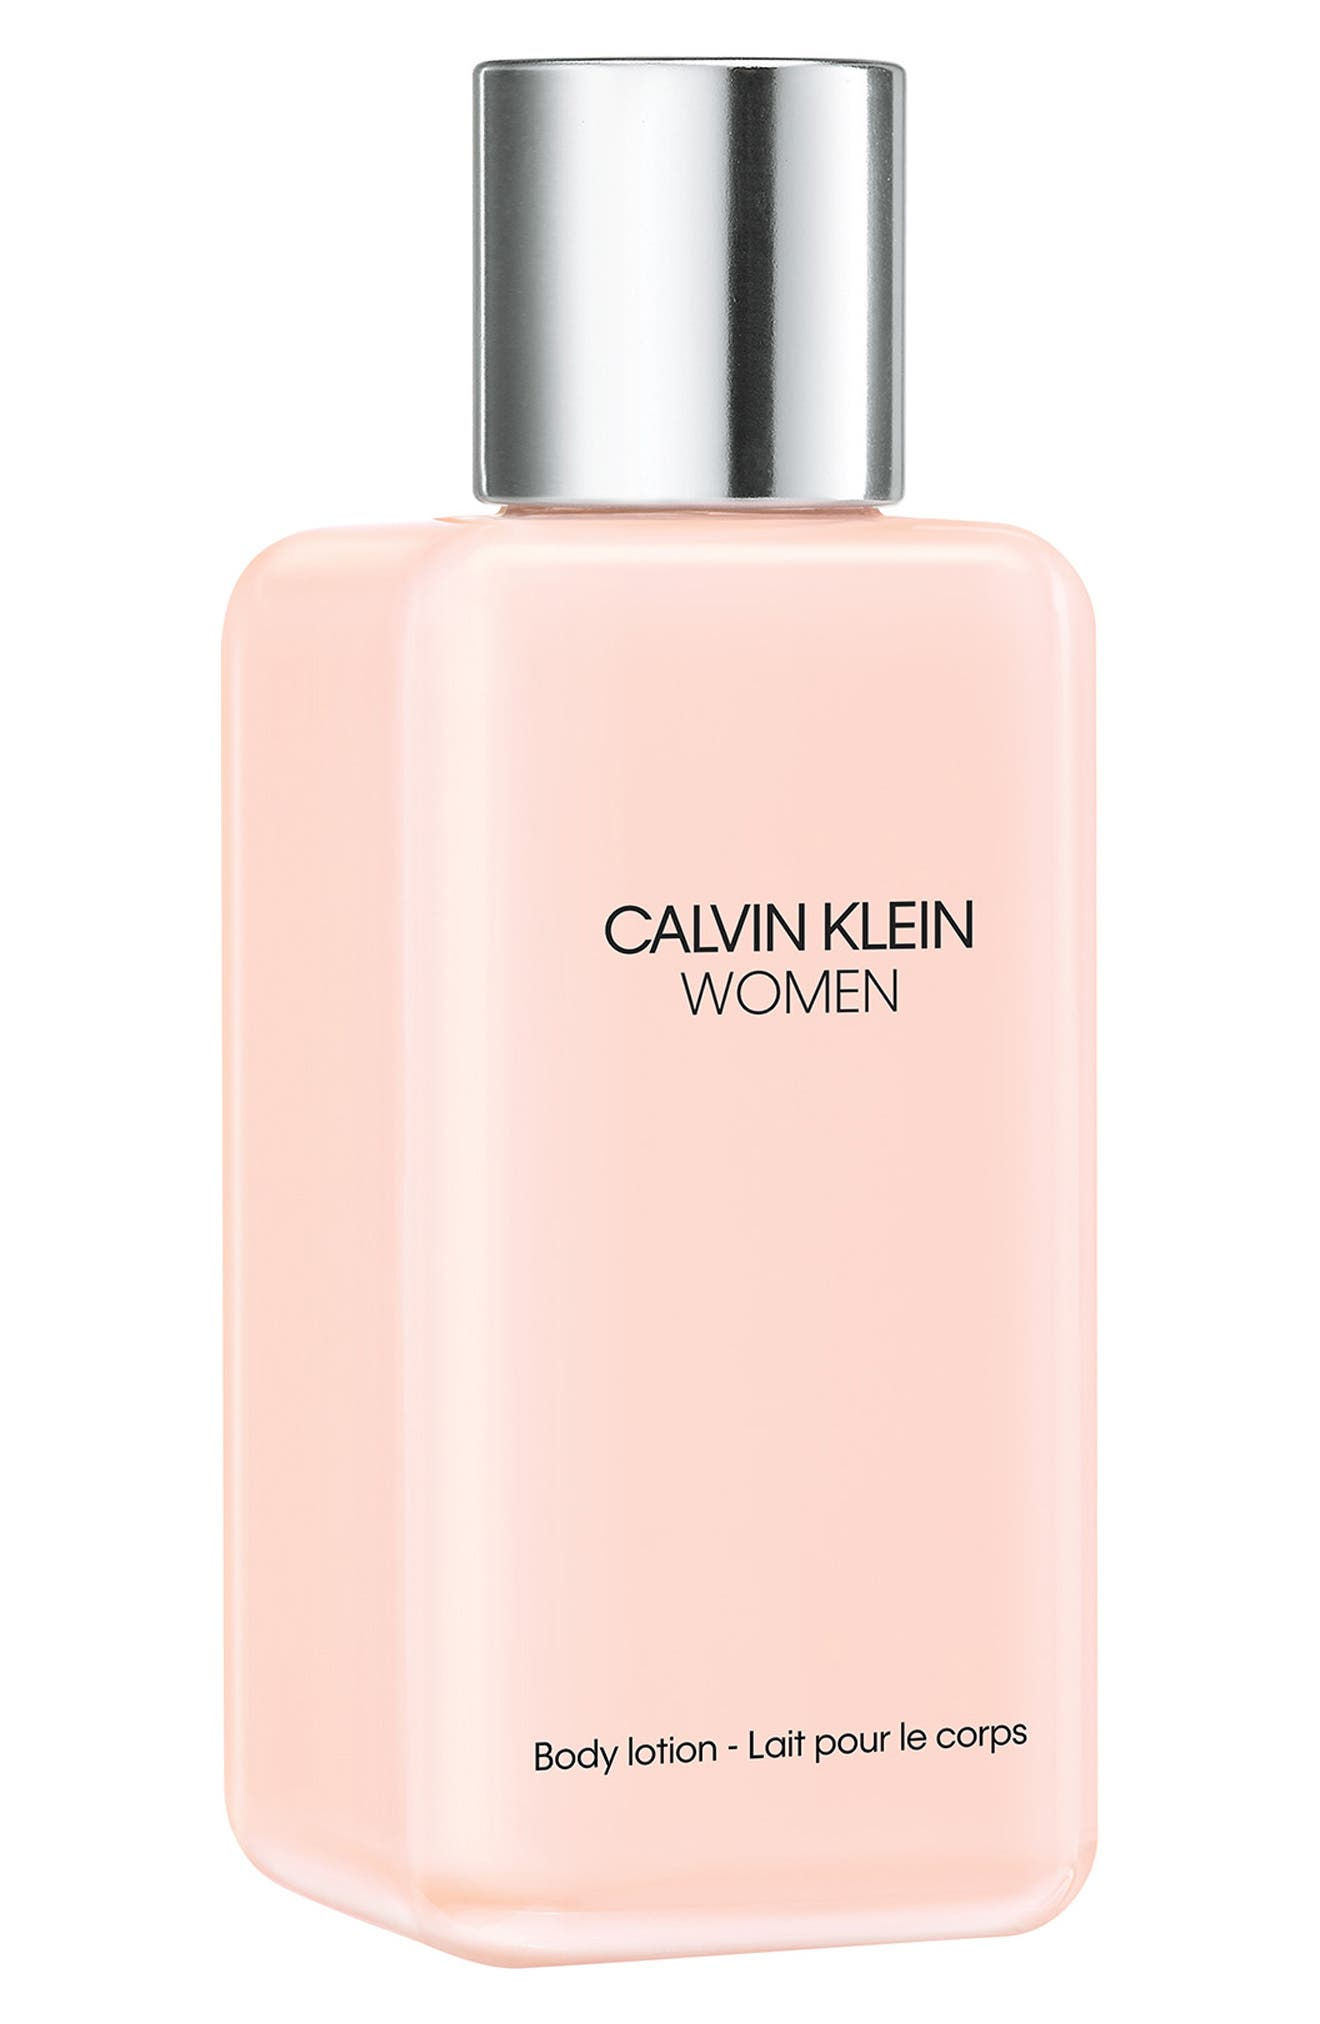 CALVIN KLEIN,                             Women Body Lotion,                             Main thumbnail 1, color,                             NO COLOR